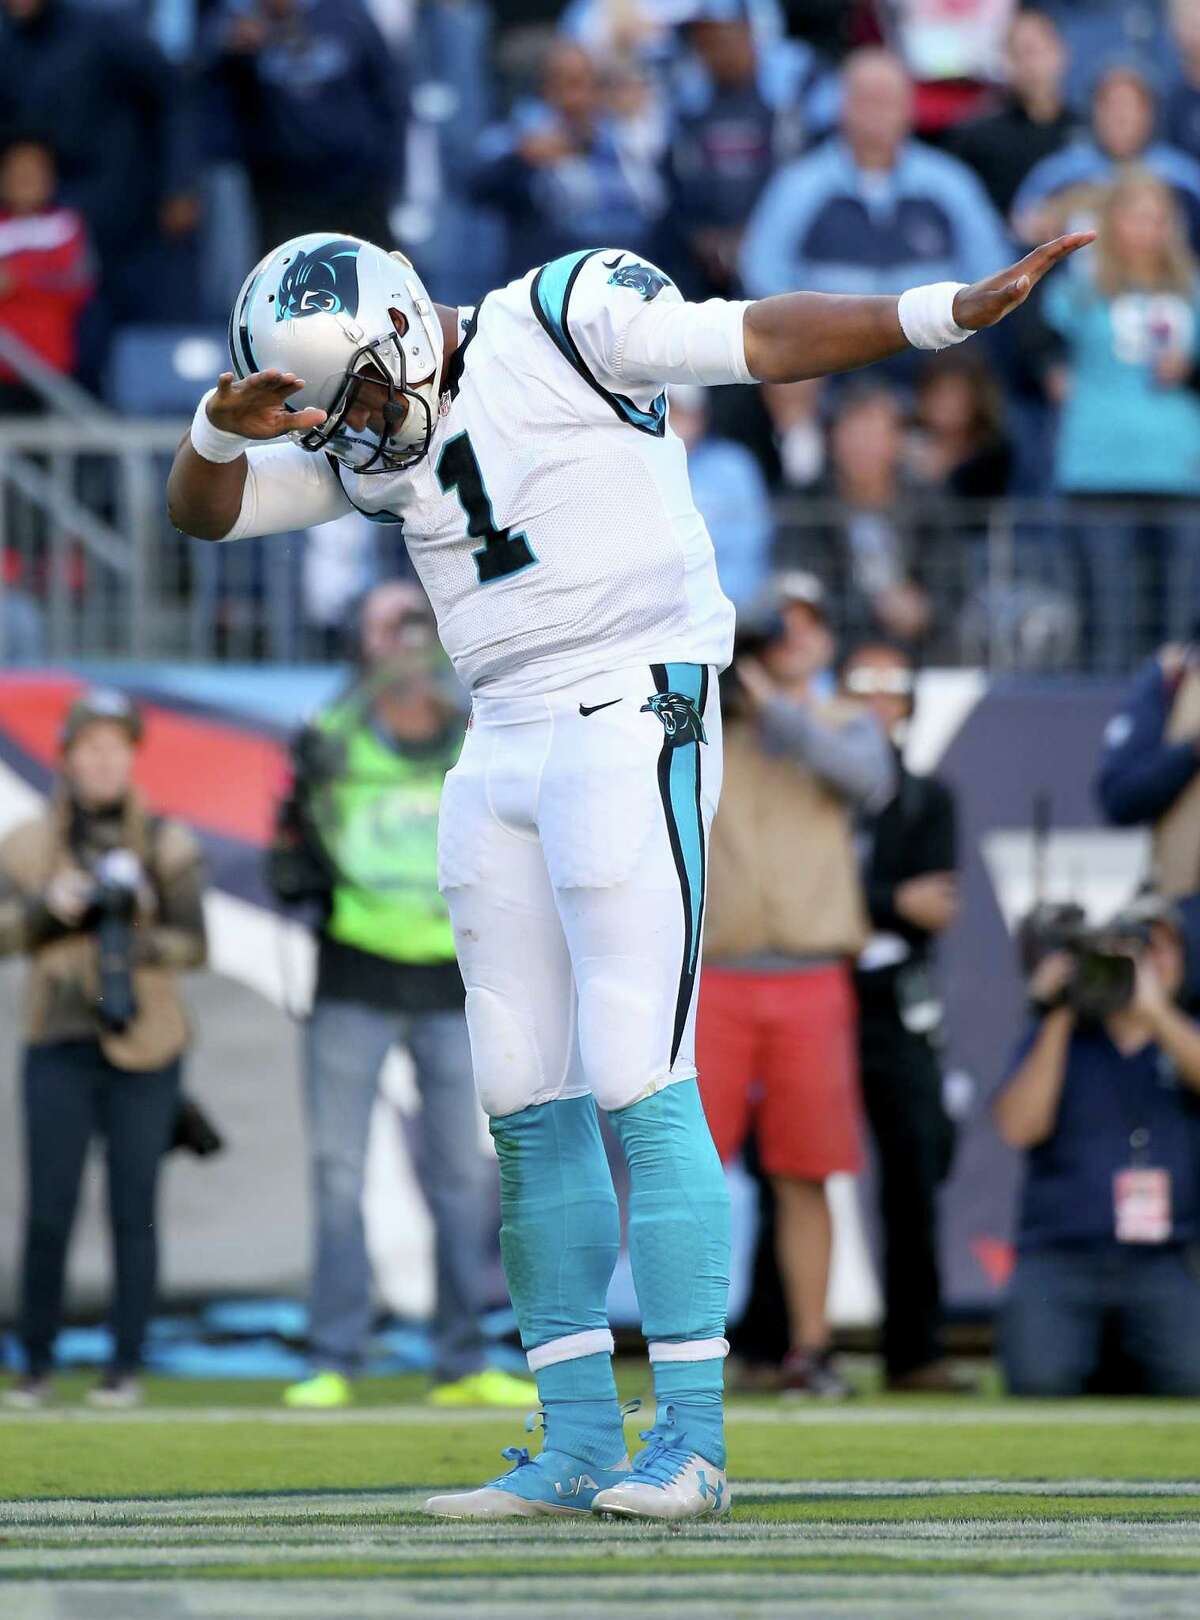 NASHVILLE, TN - NOVEMBER 15: Cam Newton #1 of the Carolina Panthers celebrates after scoring a touchdown during the second half against the Tennessee Titans at LP Field on November 15, 2015 in Nashville, Tennessee.